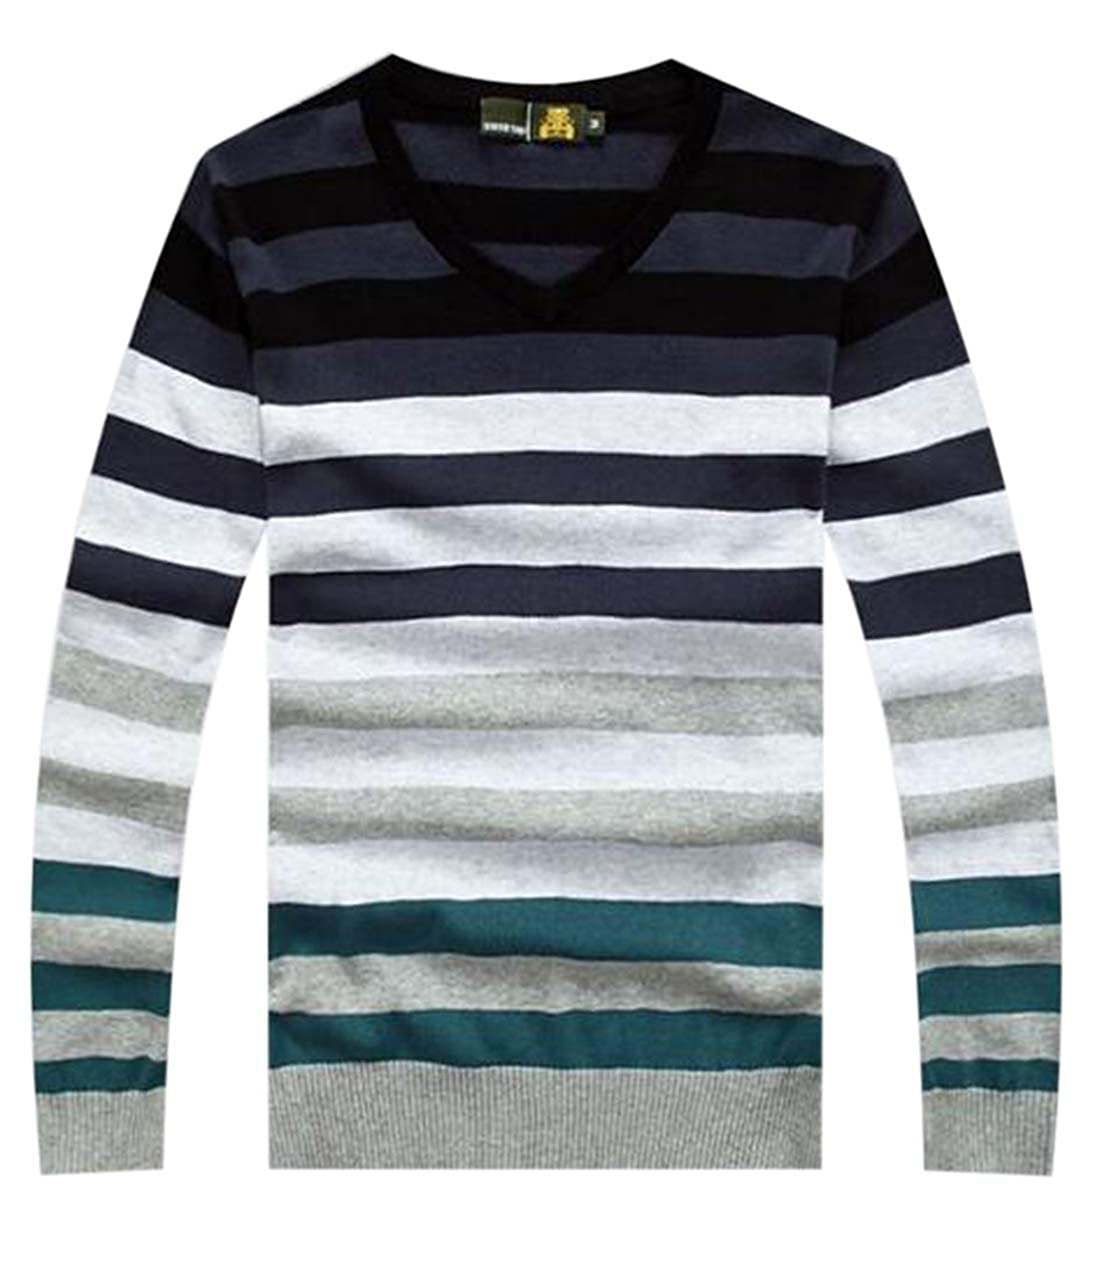 X-Future Mens Long Sleeve Knitted Cotton V Neck Striped Fashion Pullover Sweater